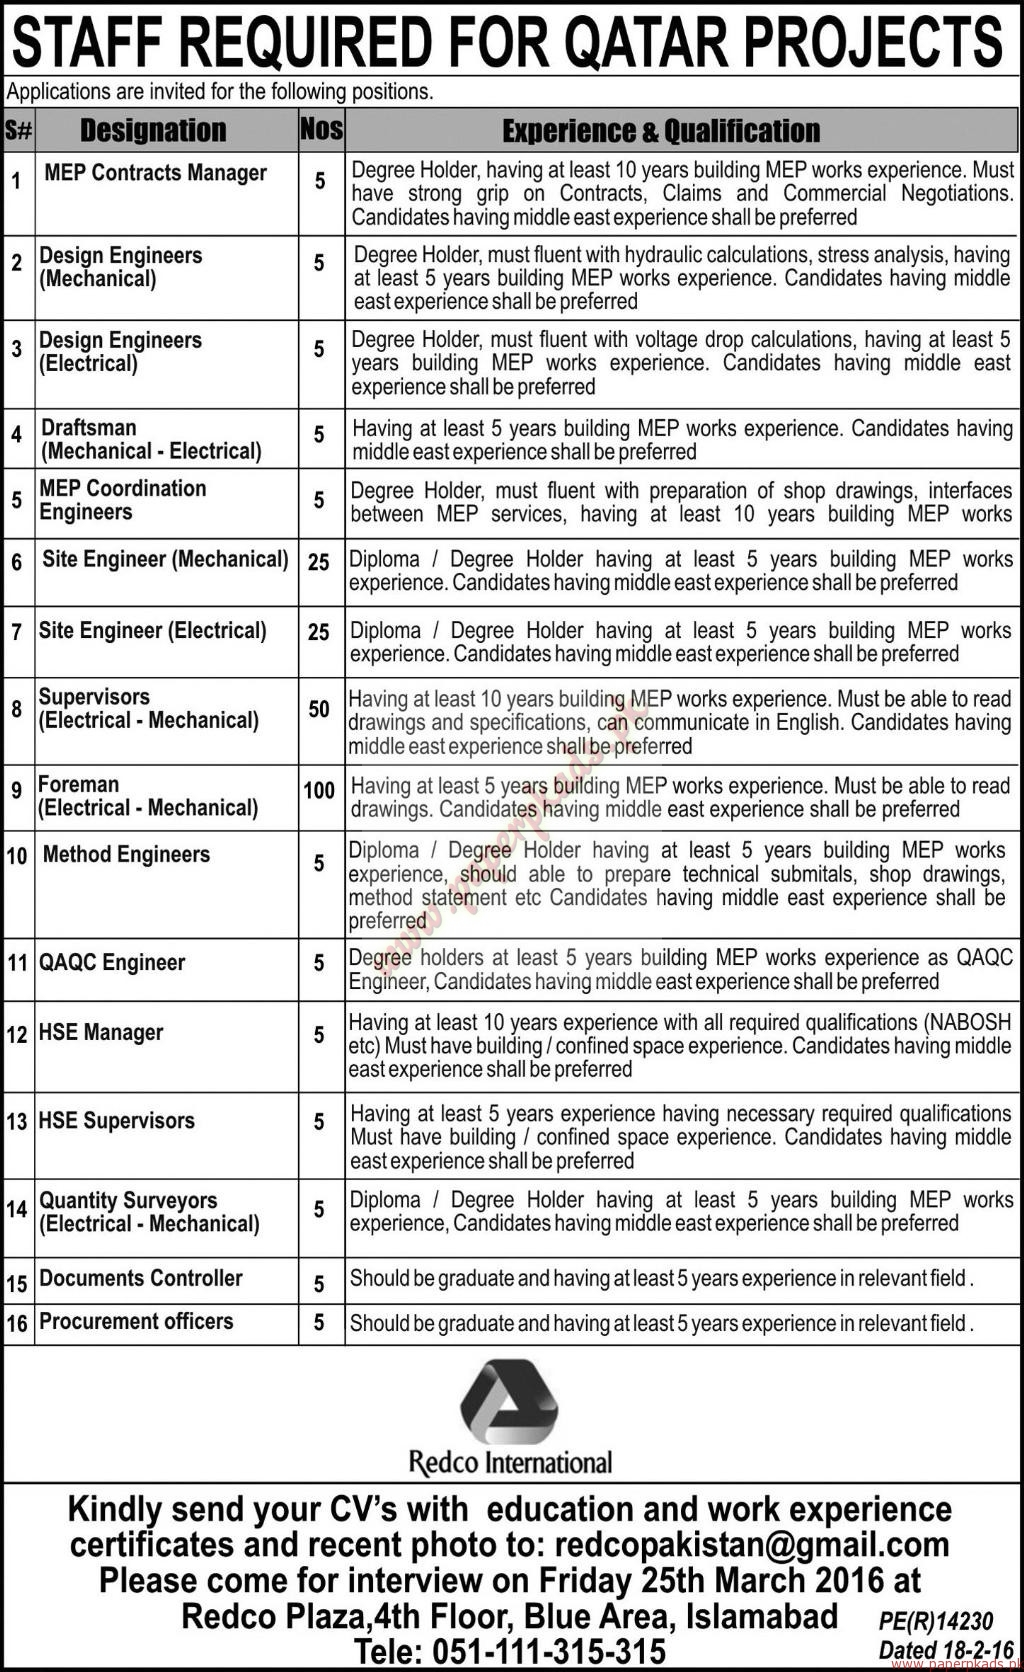 Redco International Jobs - Express Jobs ads 22 March 2016 - PaperPk